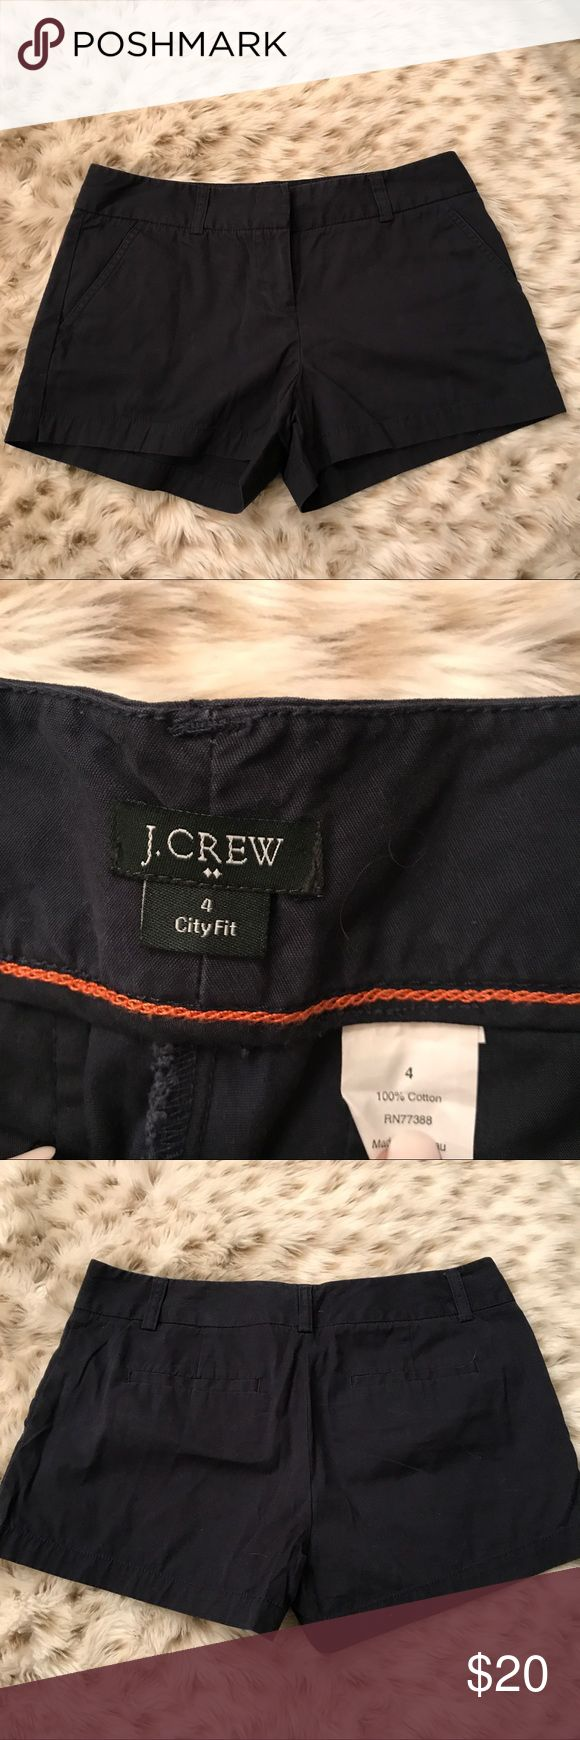 J Crew City Fit Navy Blue Shorts J Crew city fit 100% cotton navy blue shorts! Size 4! 3 inch inseam! Super comfy and great for spring and summer ! Excellent used condition! J. Crew Shorts